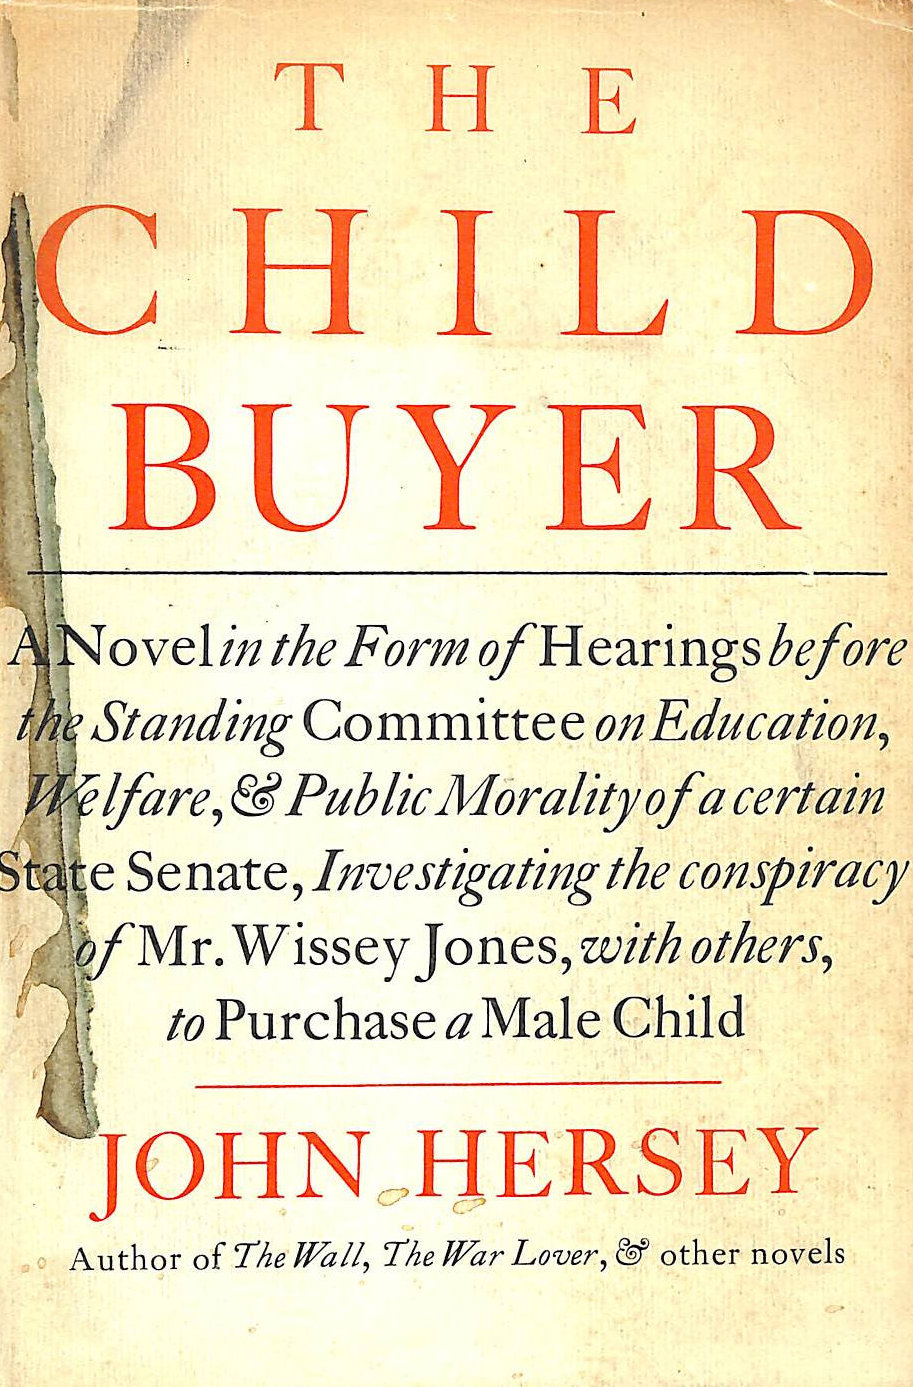 Image for The Child Buyer; a Novel in the Form of Hearings before the Standing Committee on Education, Welfare, and Public Morality of a Certain State Senate, Investigating the Conspiracy of Mr. Wissey Jones, with Others, to Purchase a Male Child